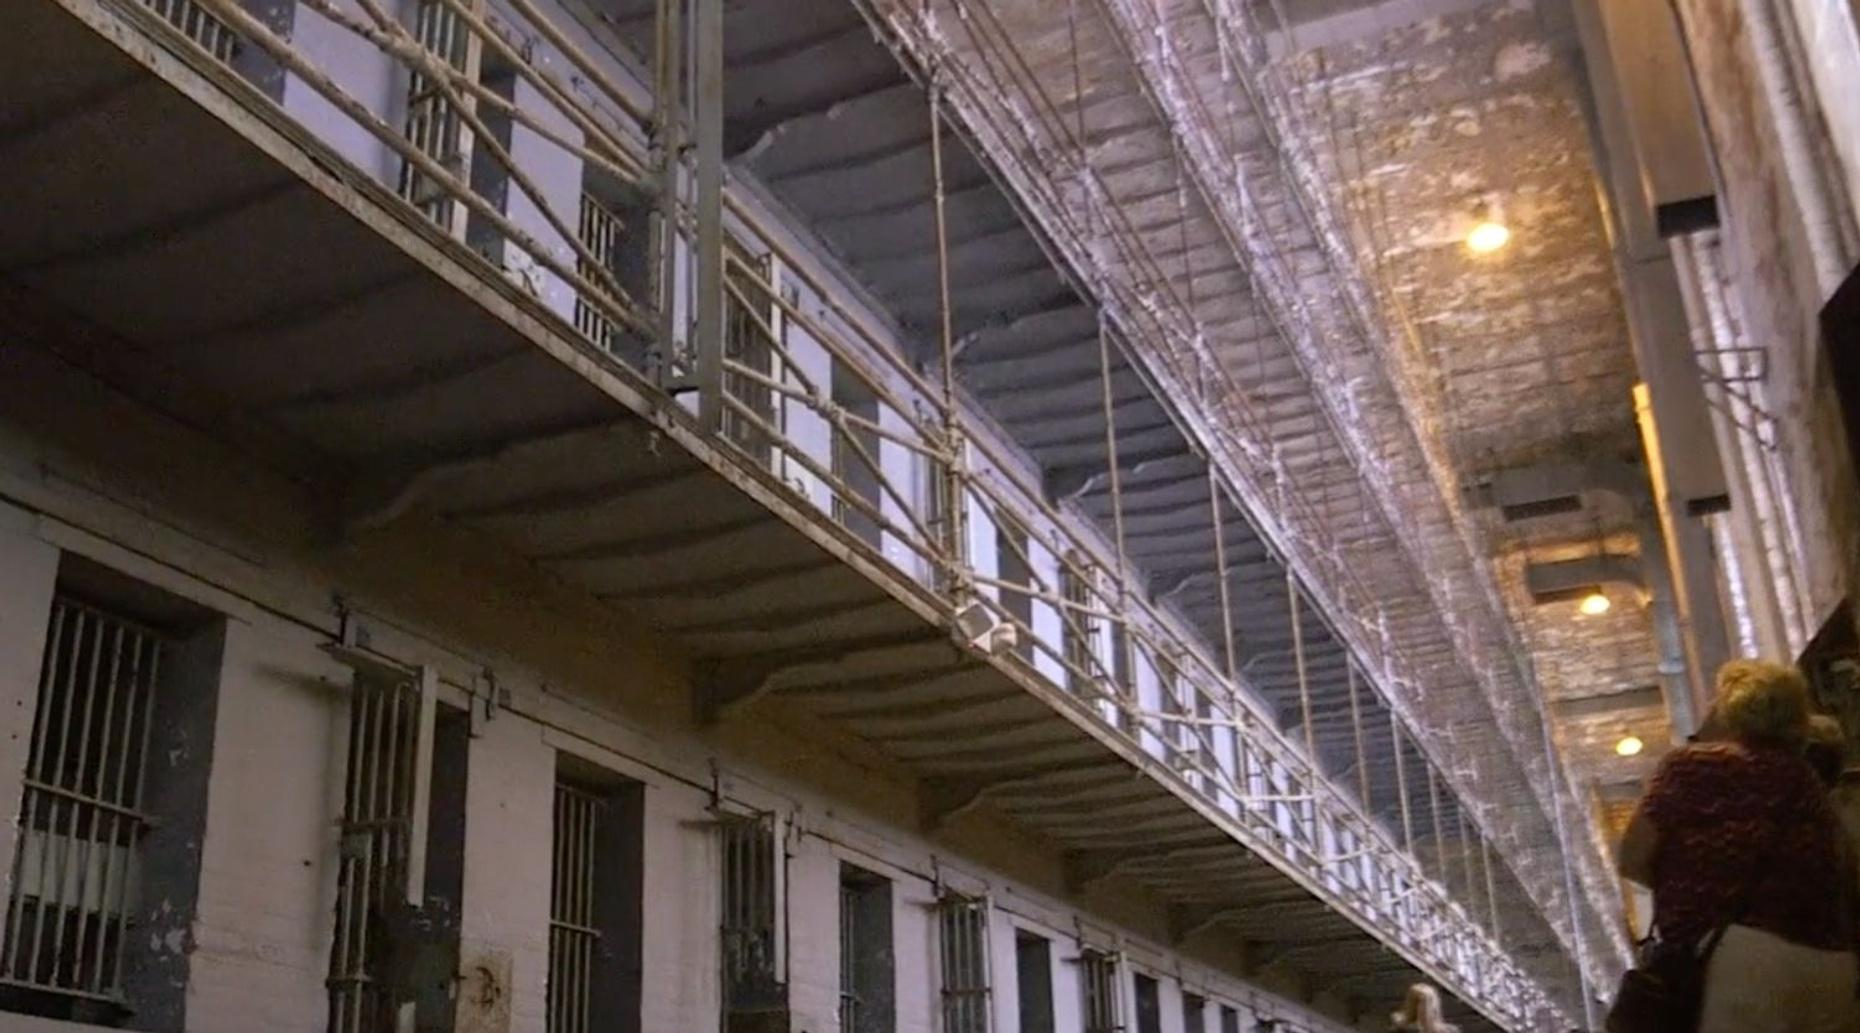 Shawshank Redemption Self-Guided Tour